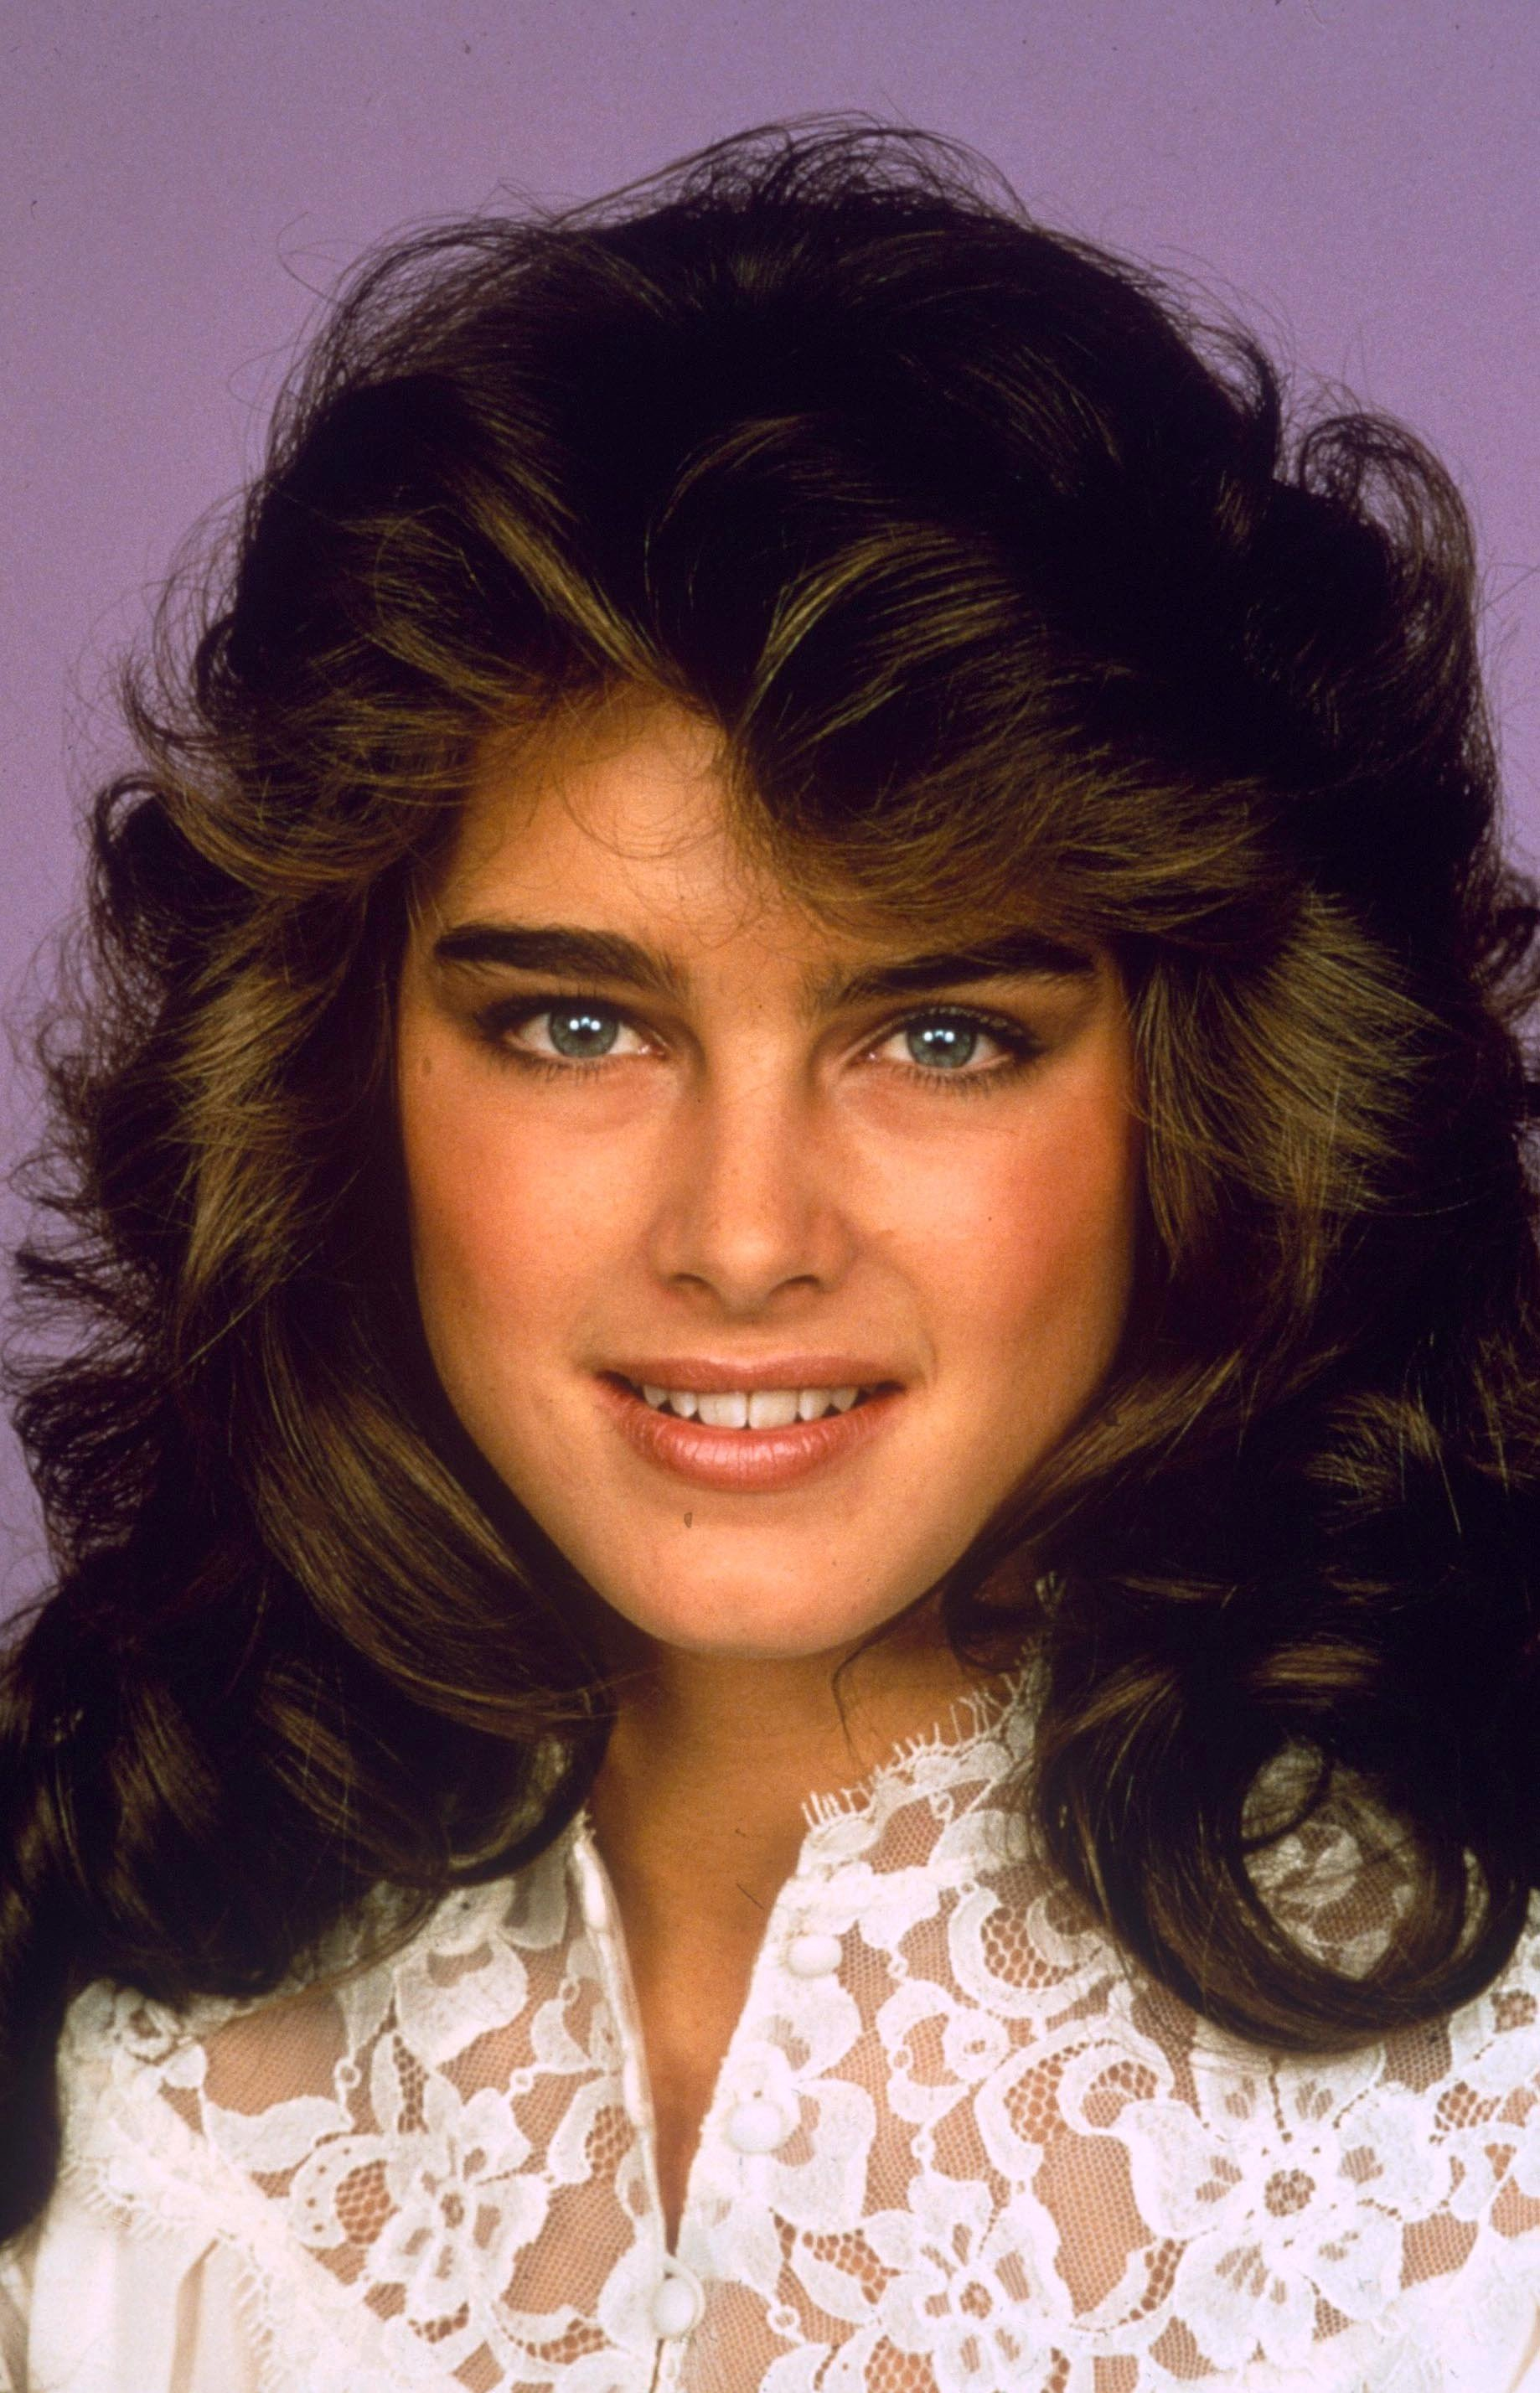 Brooke shields youngest nude